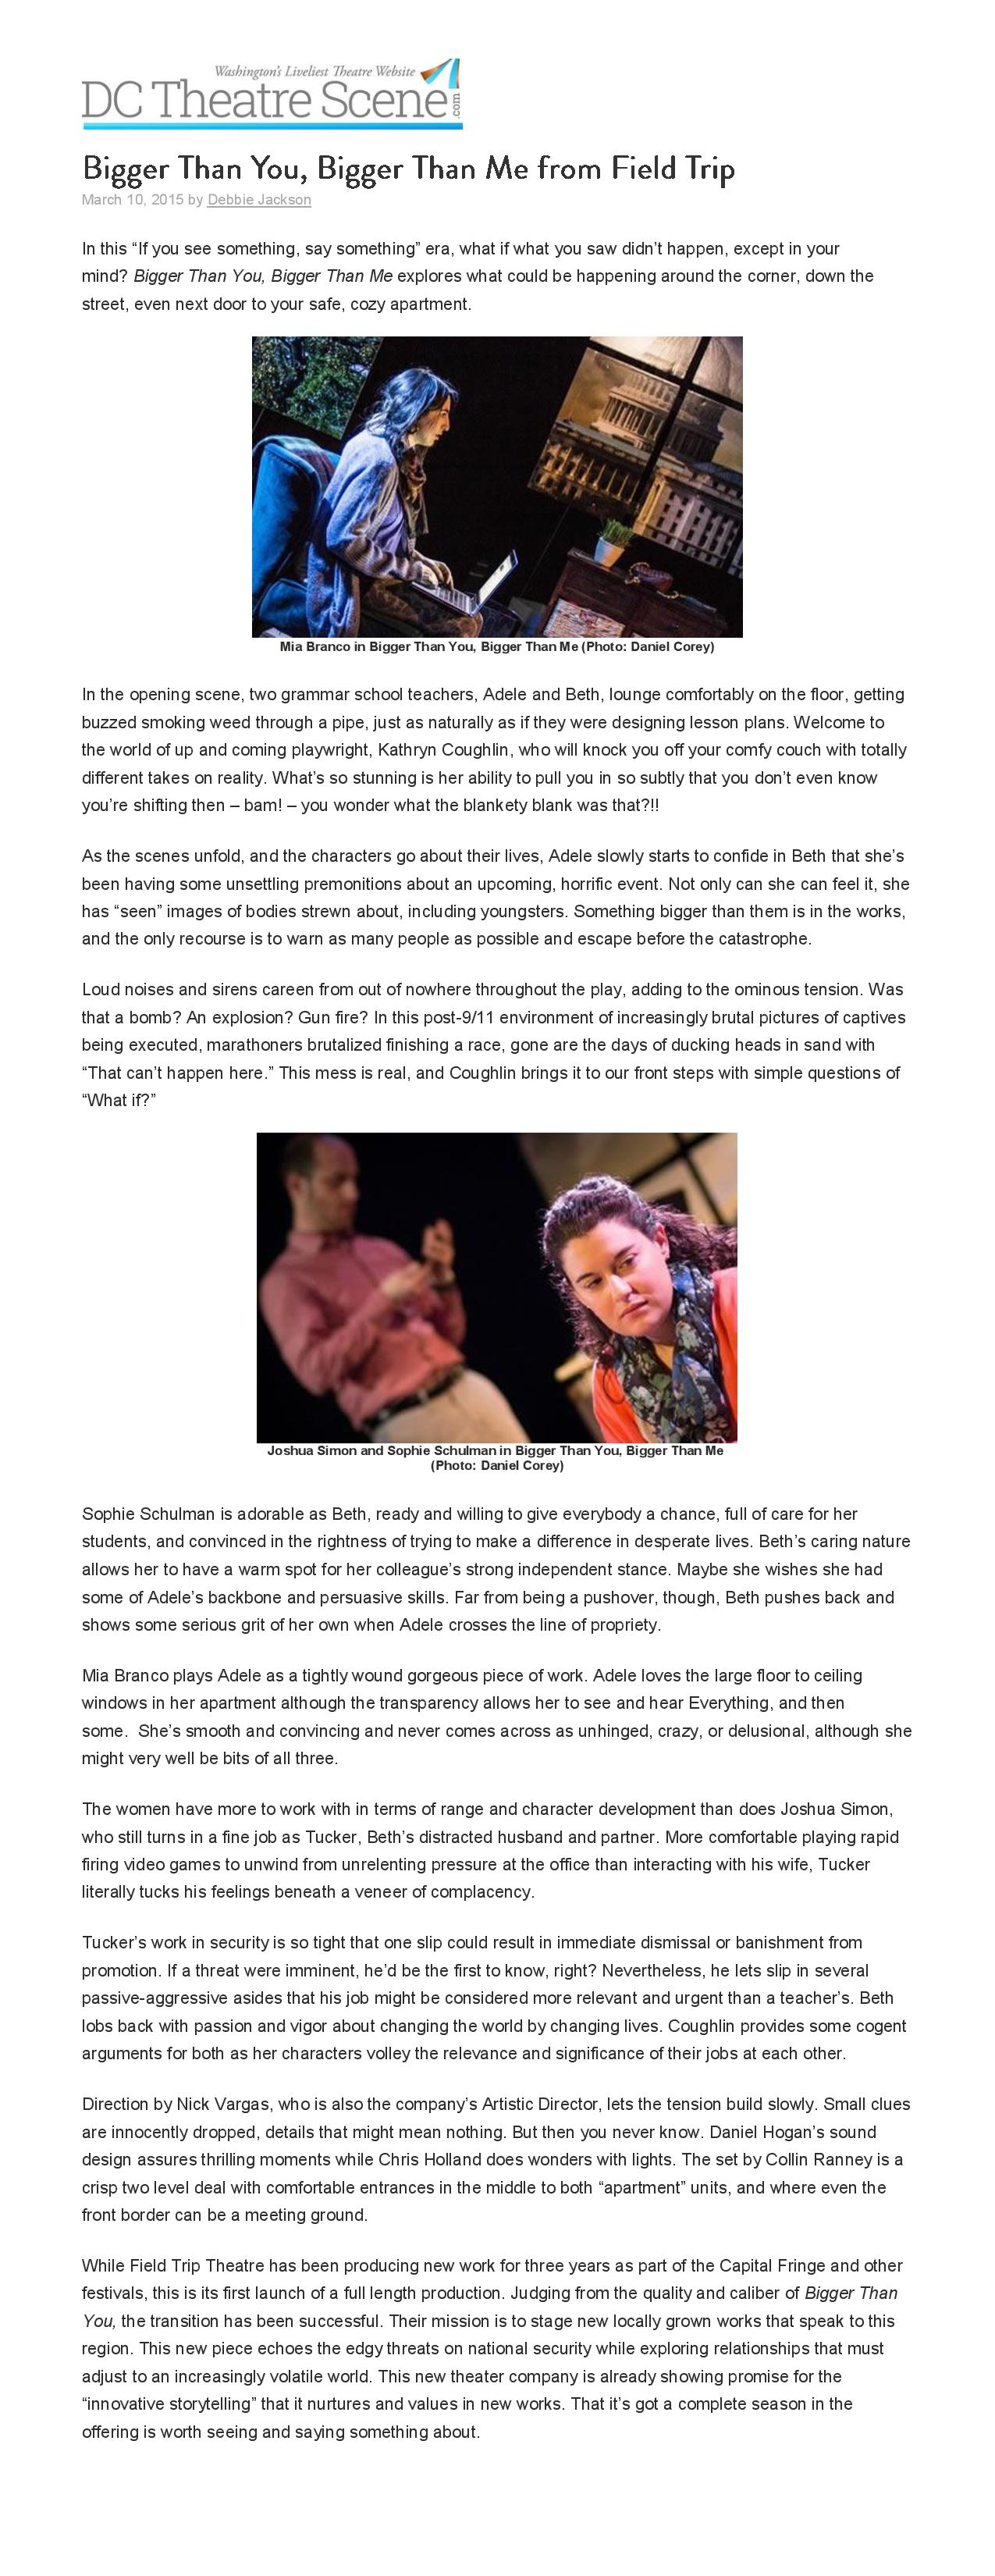 DC Theater Scene Bigger Than You March 2015-page-001 (1)